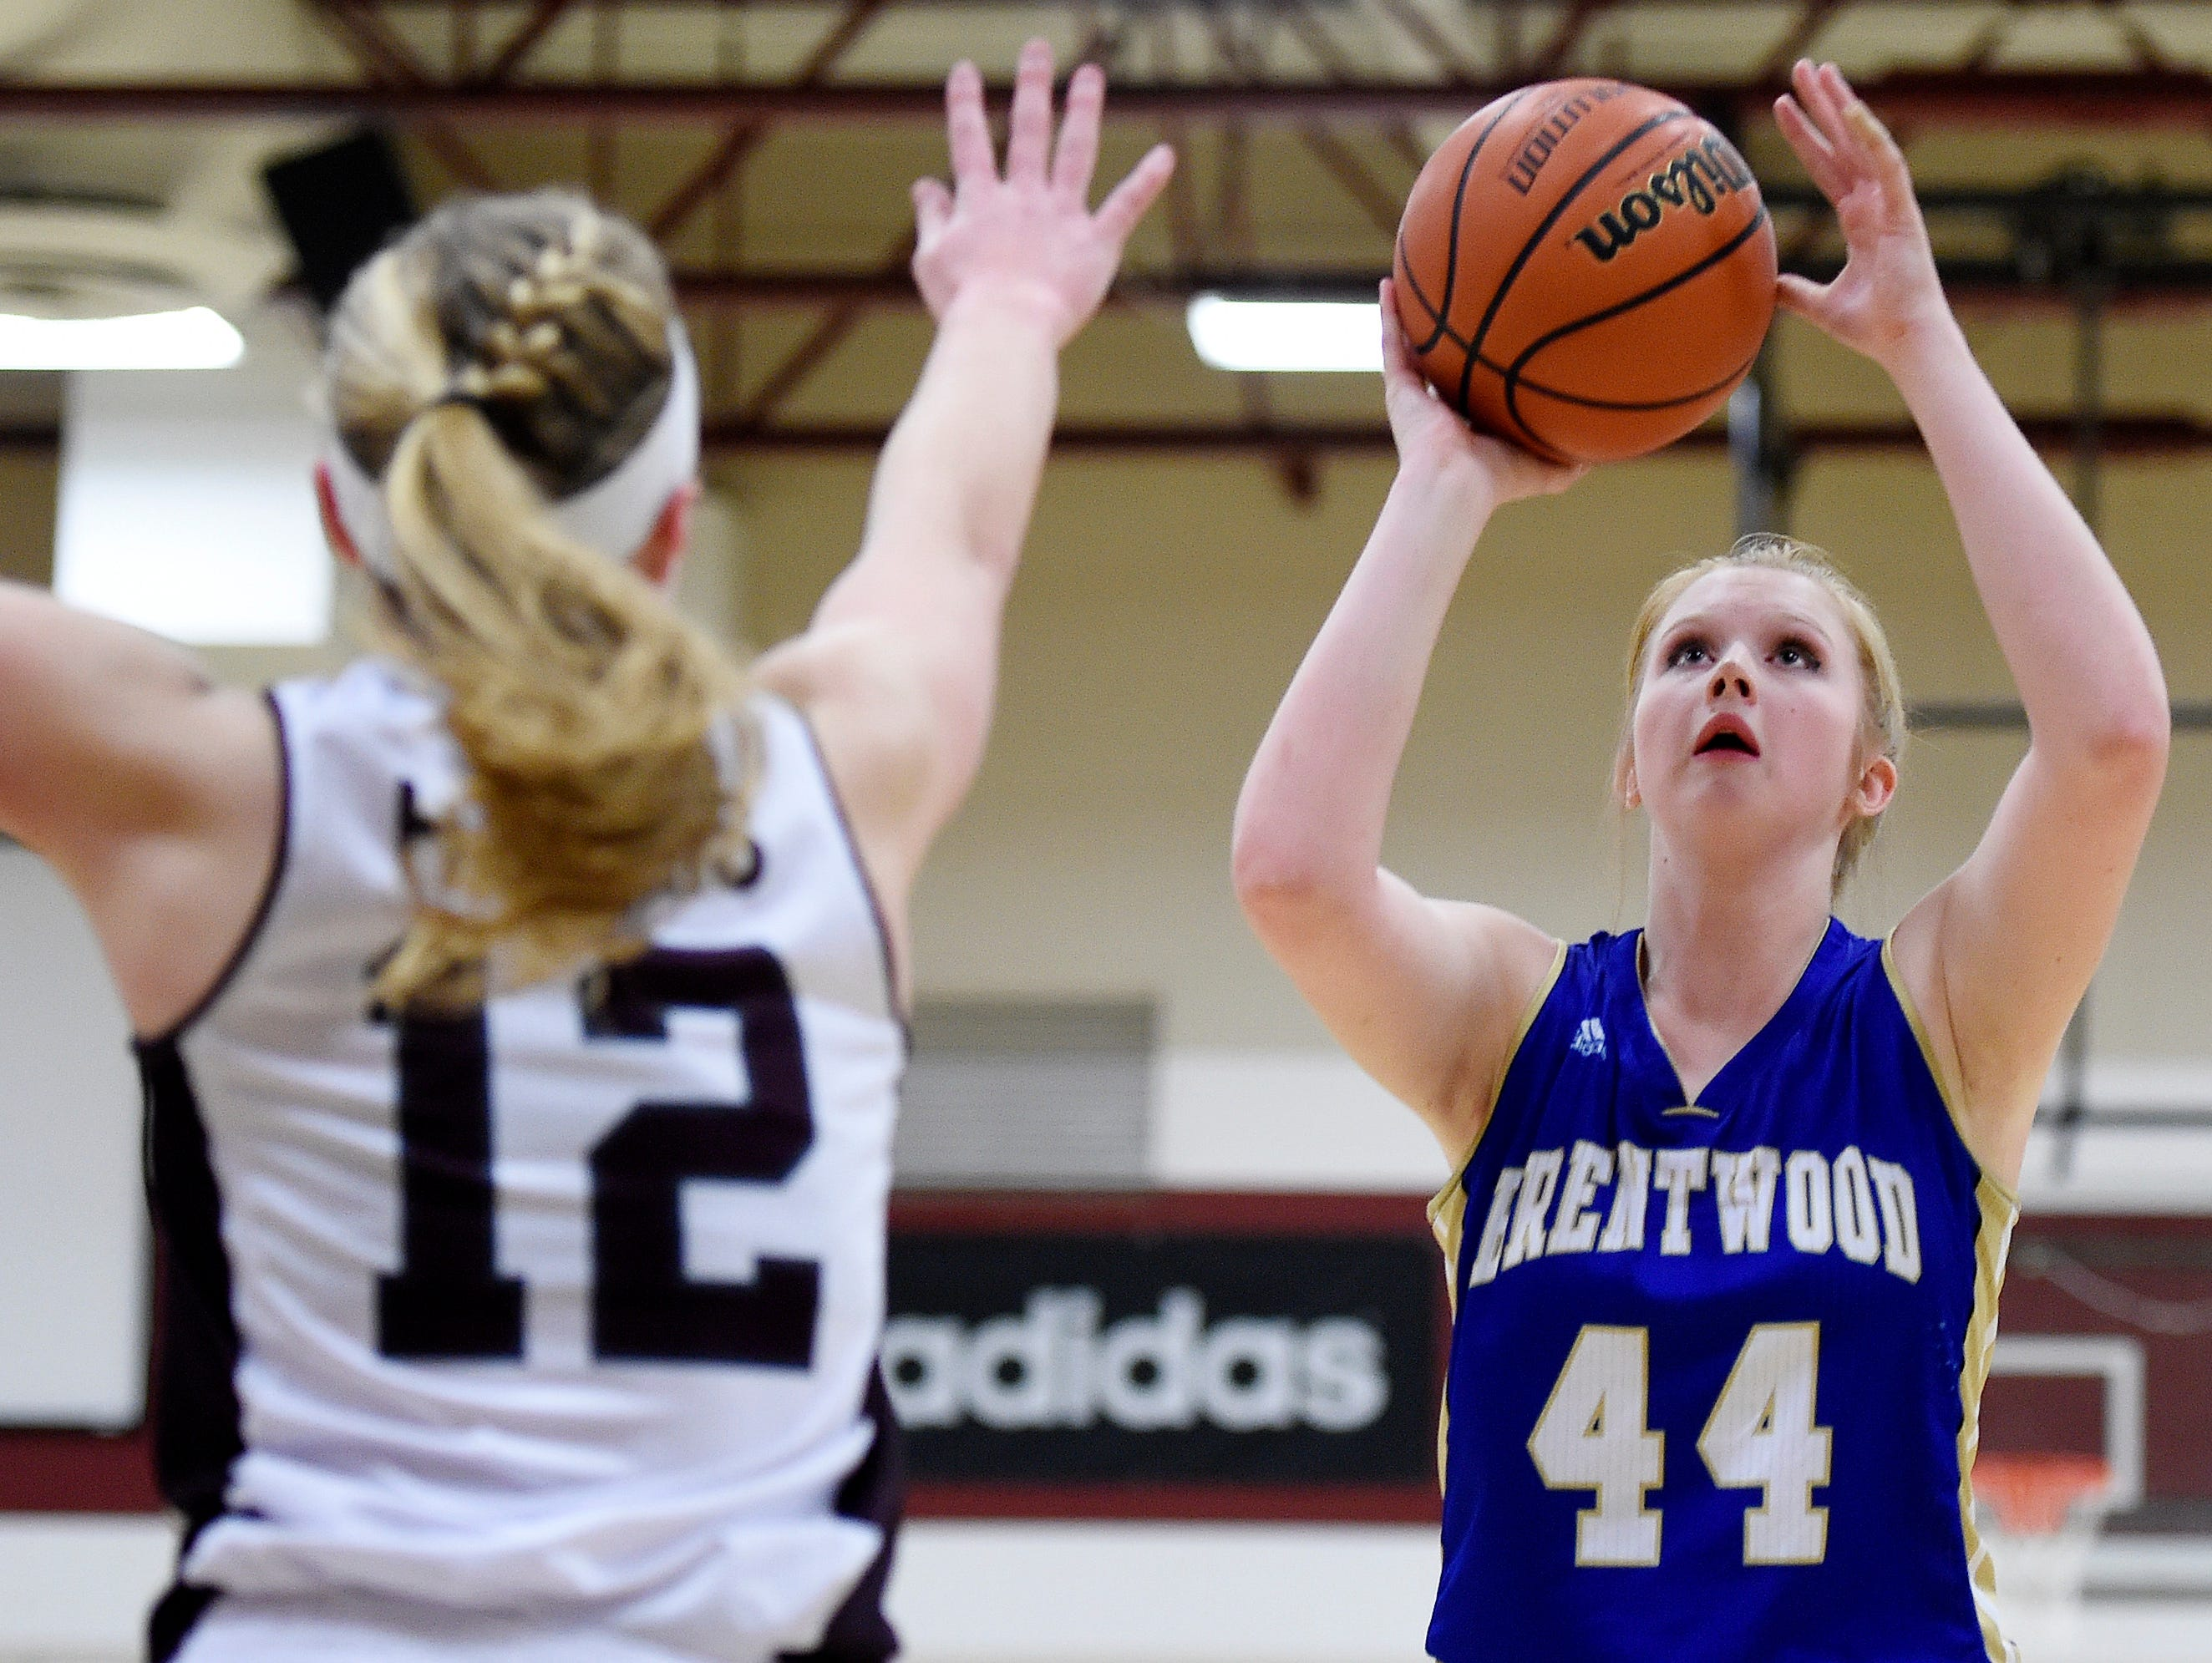 Brentwood's AK Lawrence (44) shoots over Franklin's Holly Harris (12) during the second half at Franklin High School, Tuesday, Feb. 16, 2016, in Franklin, Tenn.